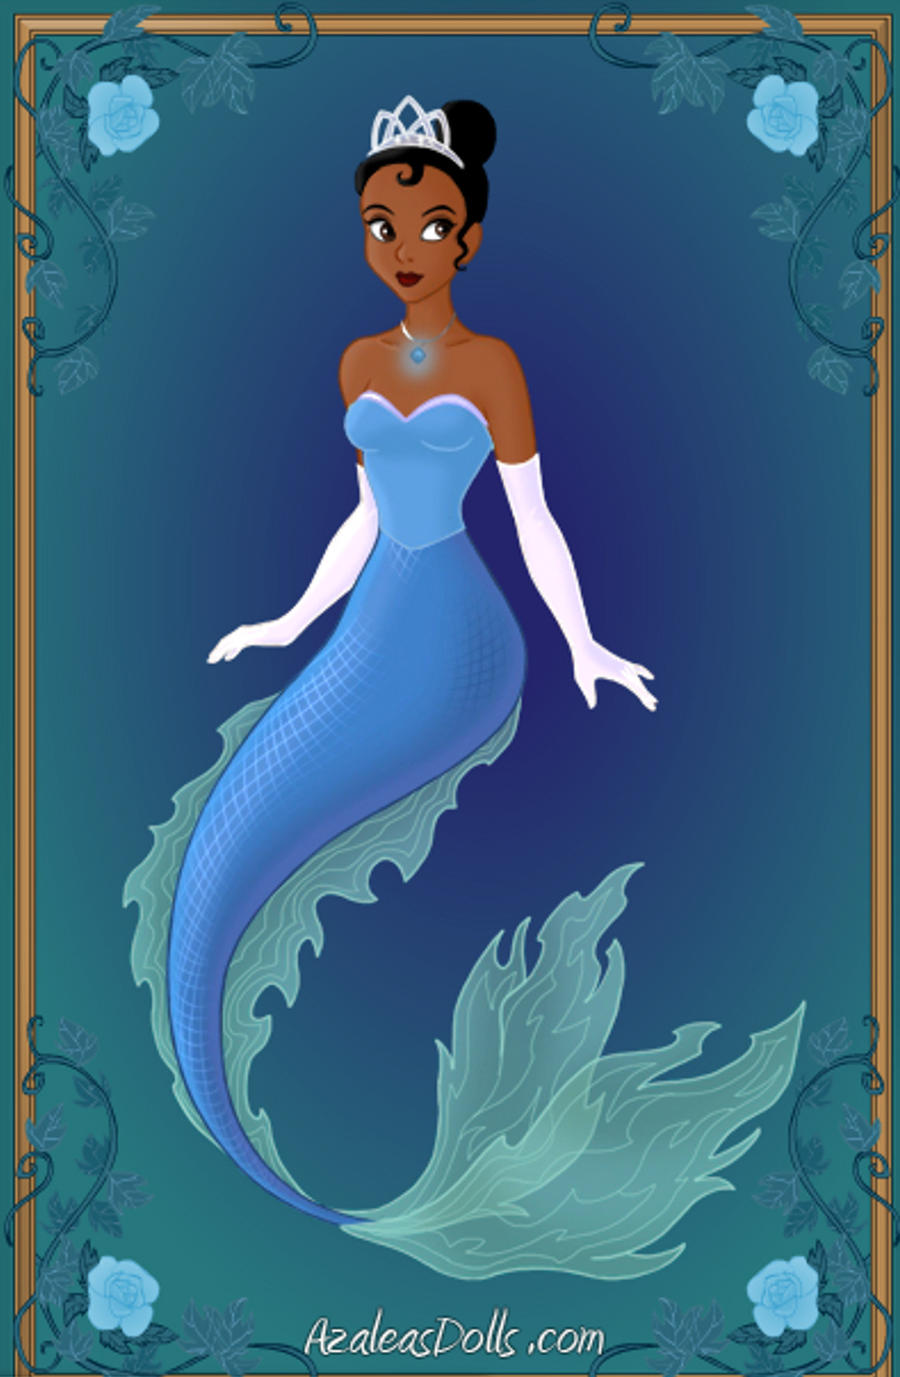 Tiana Disney Mermaids By Wolfsgesang On Deviantart Pictures Of Disney Princesses As Mermaids